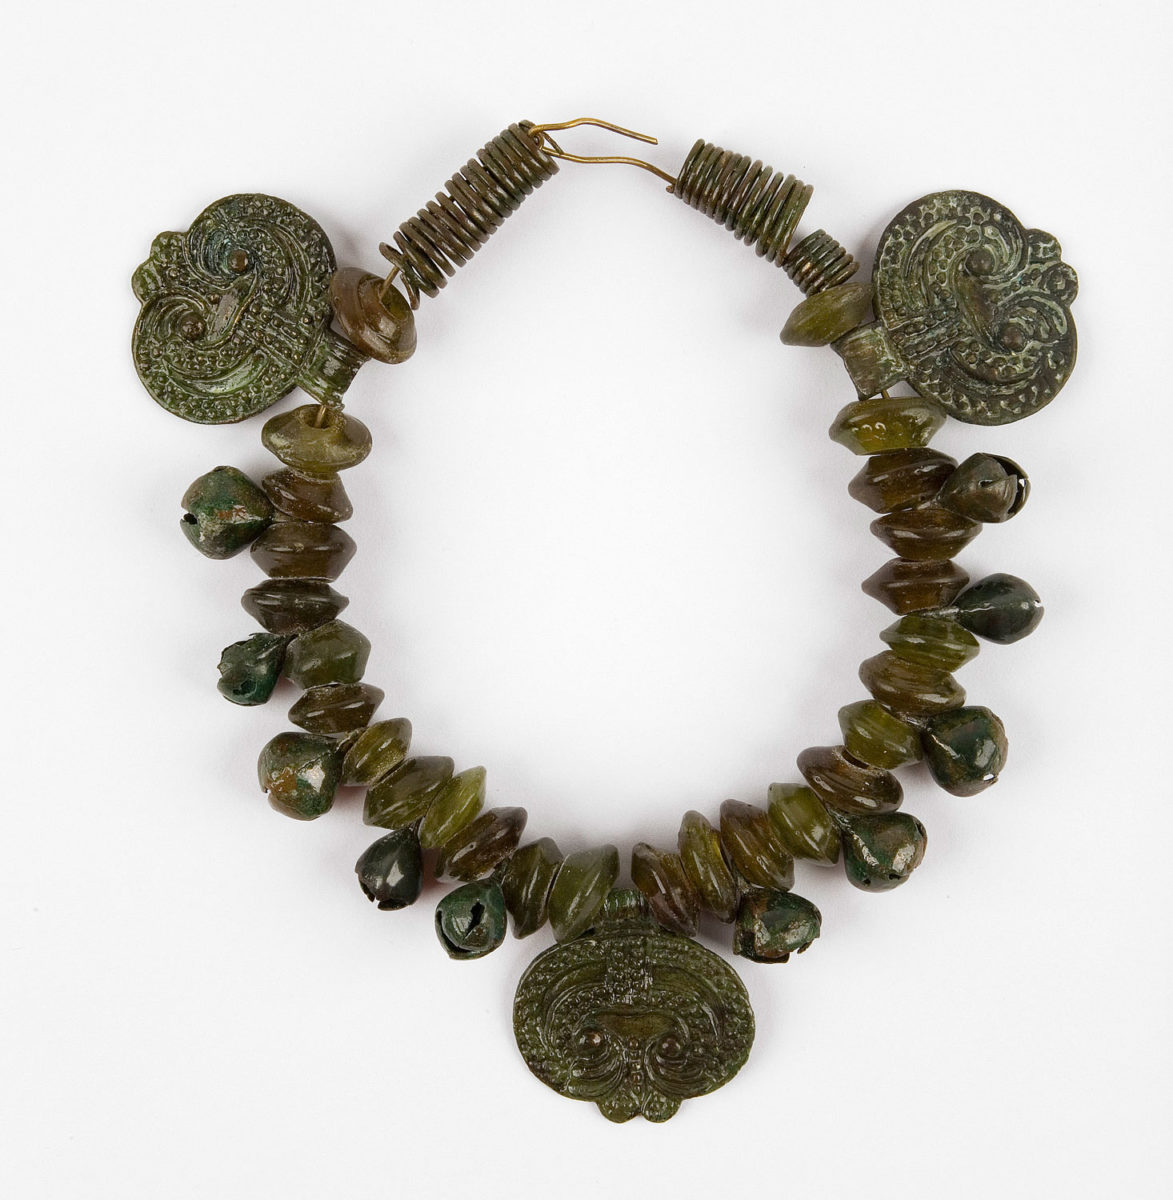 Necklace with glass beads and bronze appendages. Widohoszcz, Belarus. 11th-13th c. (©State Archaeological Museum of Warsaw)